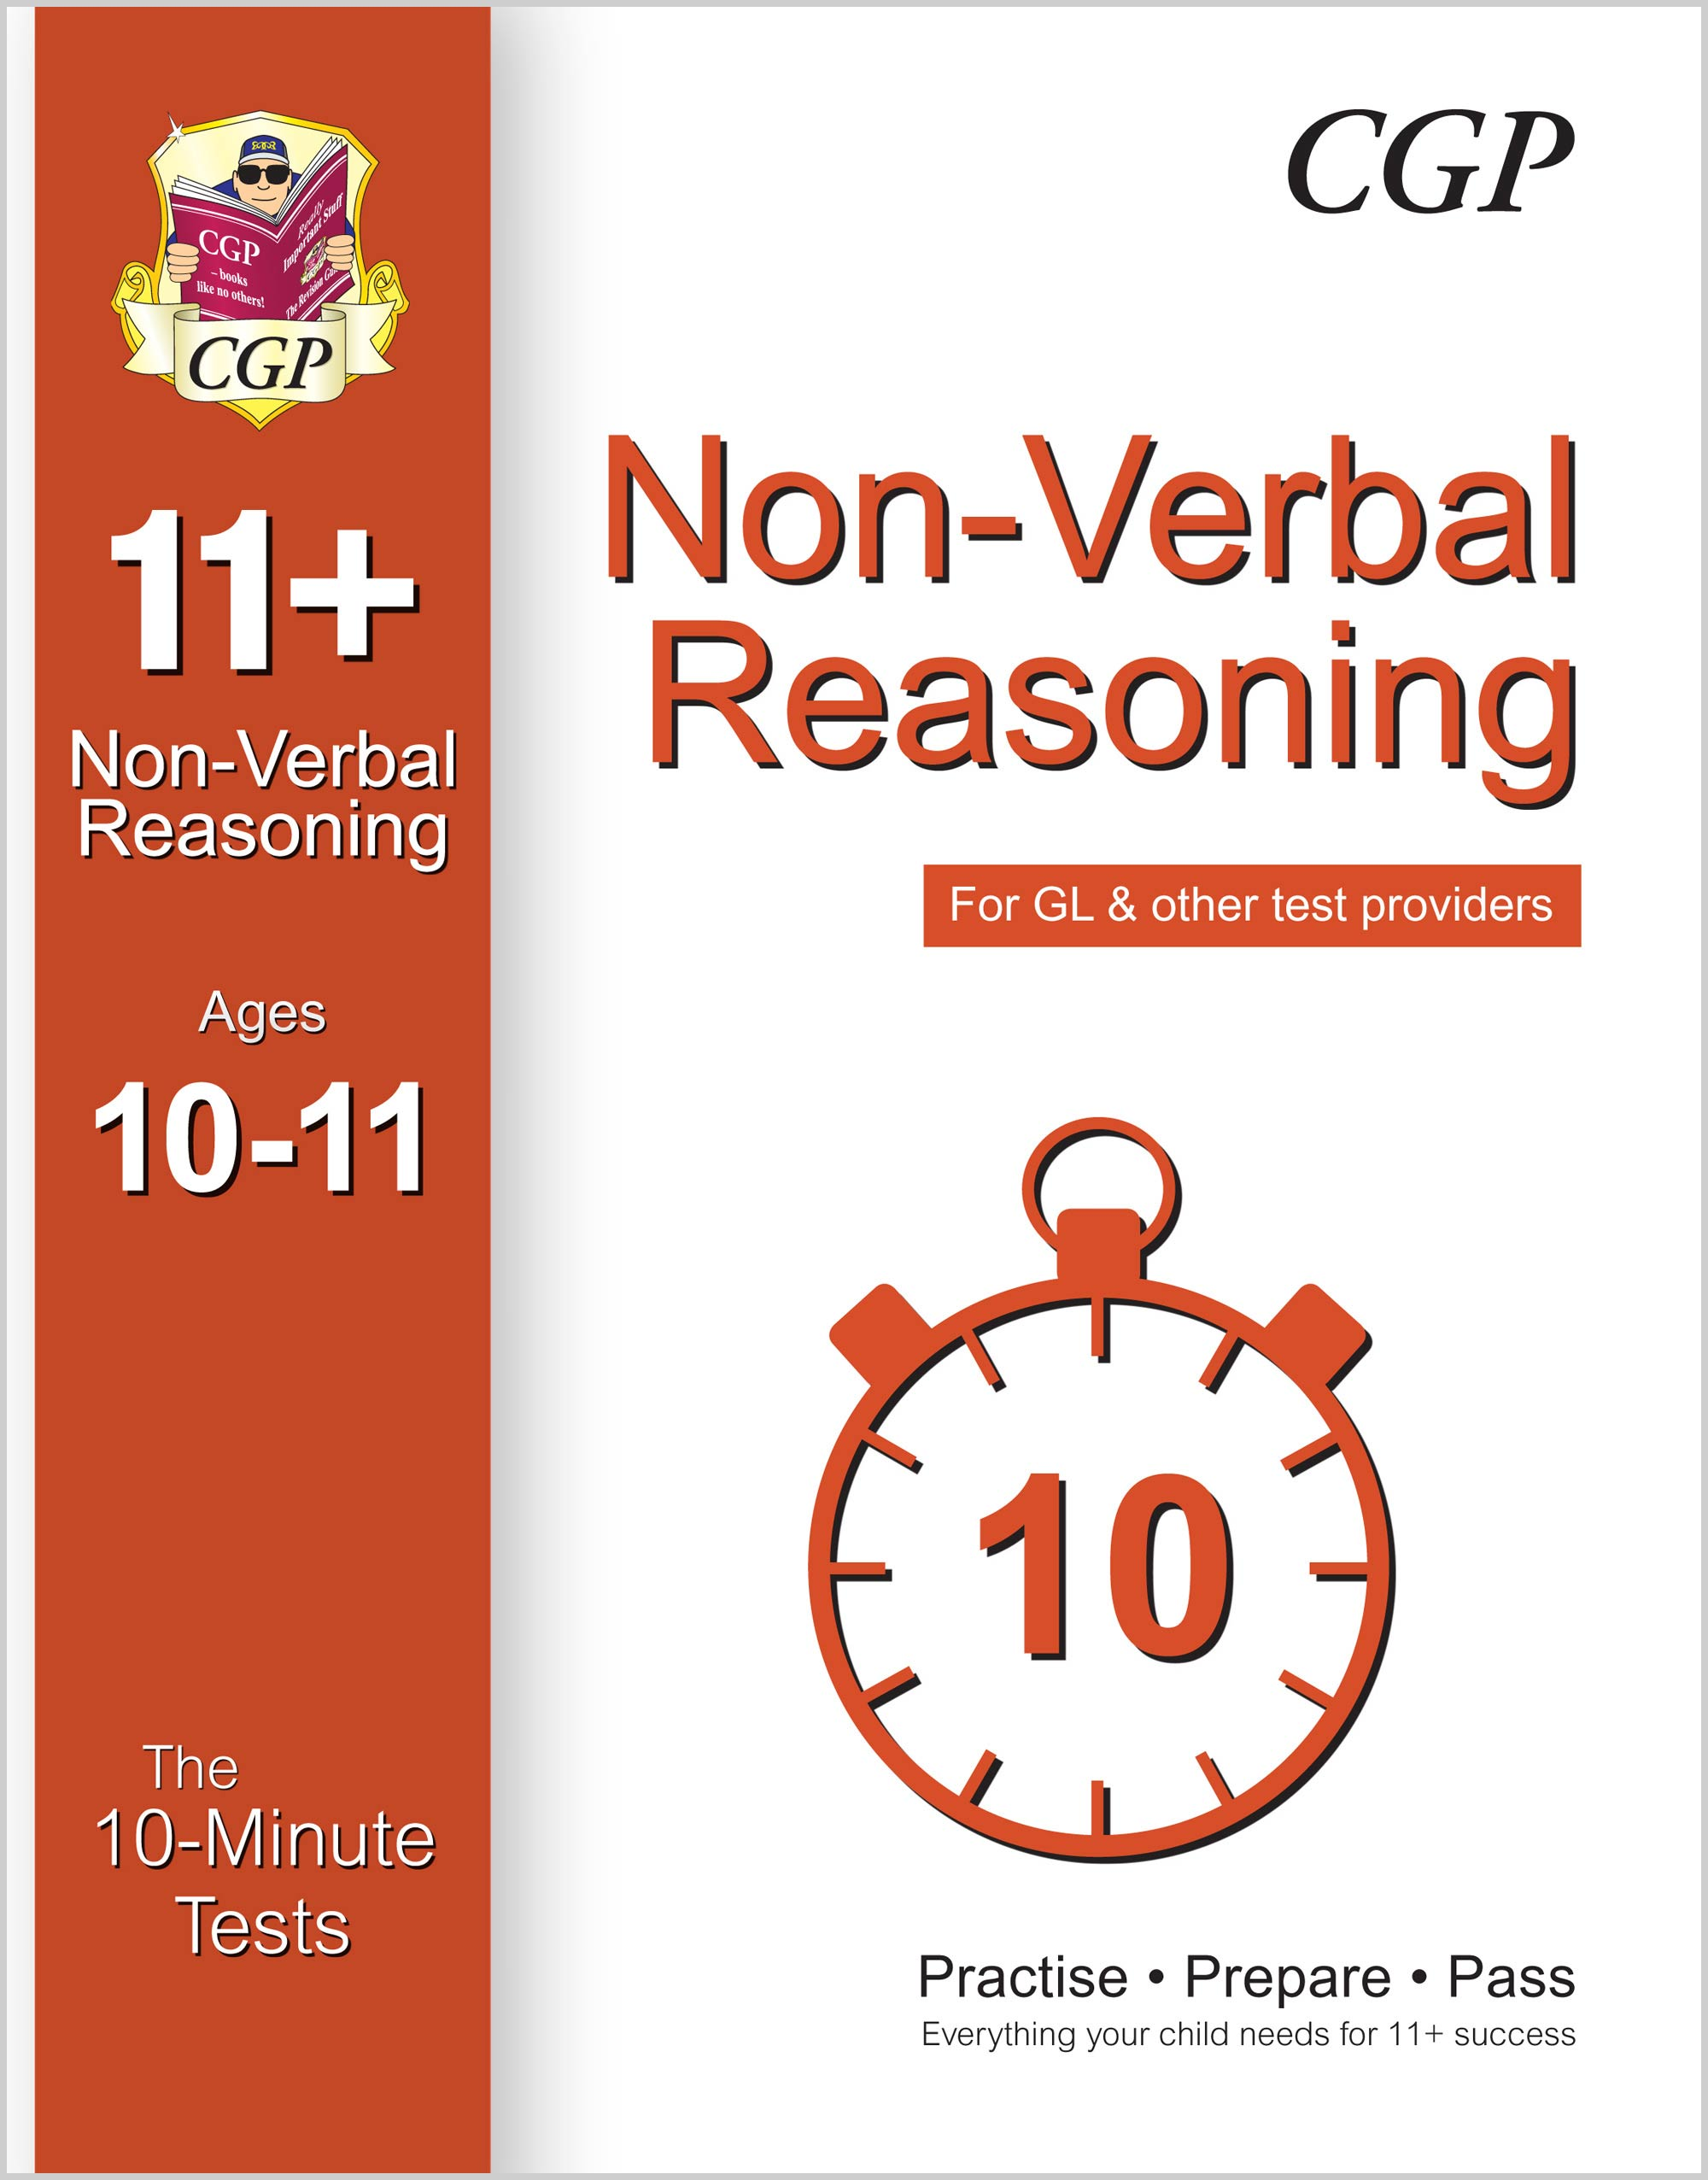 N6XPE1 - 10-Minute Tests for 11+ Non-Verbal Reasoning (Ages 10-11) (for GL & Other Test Providers)